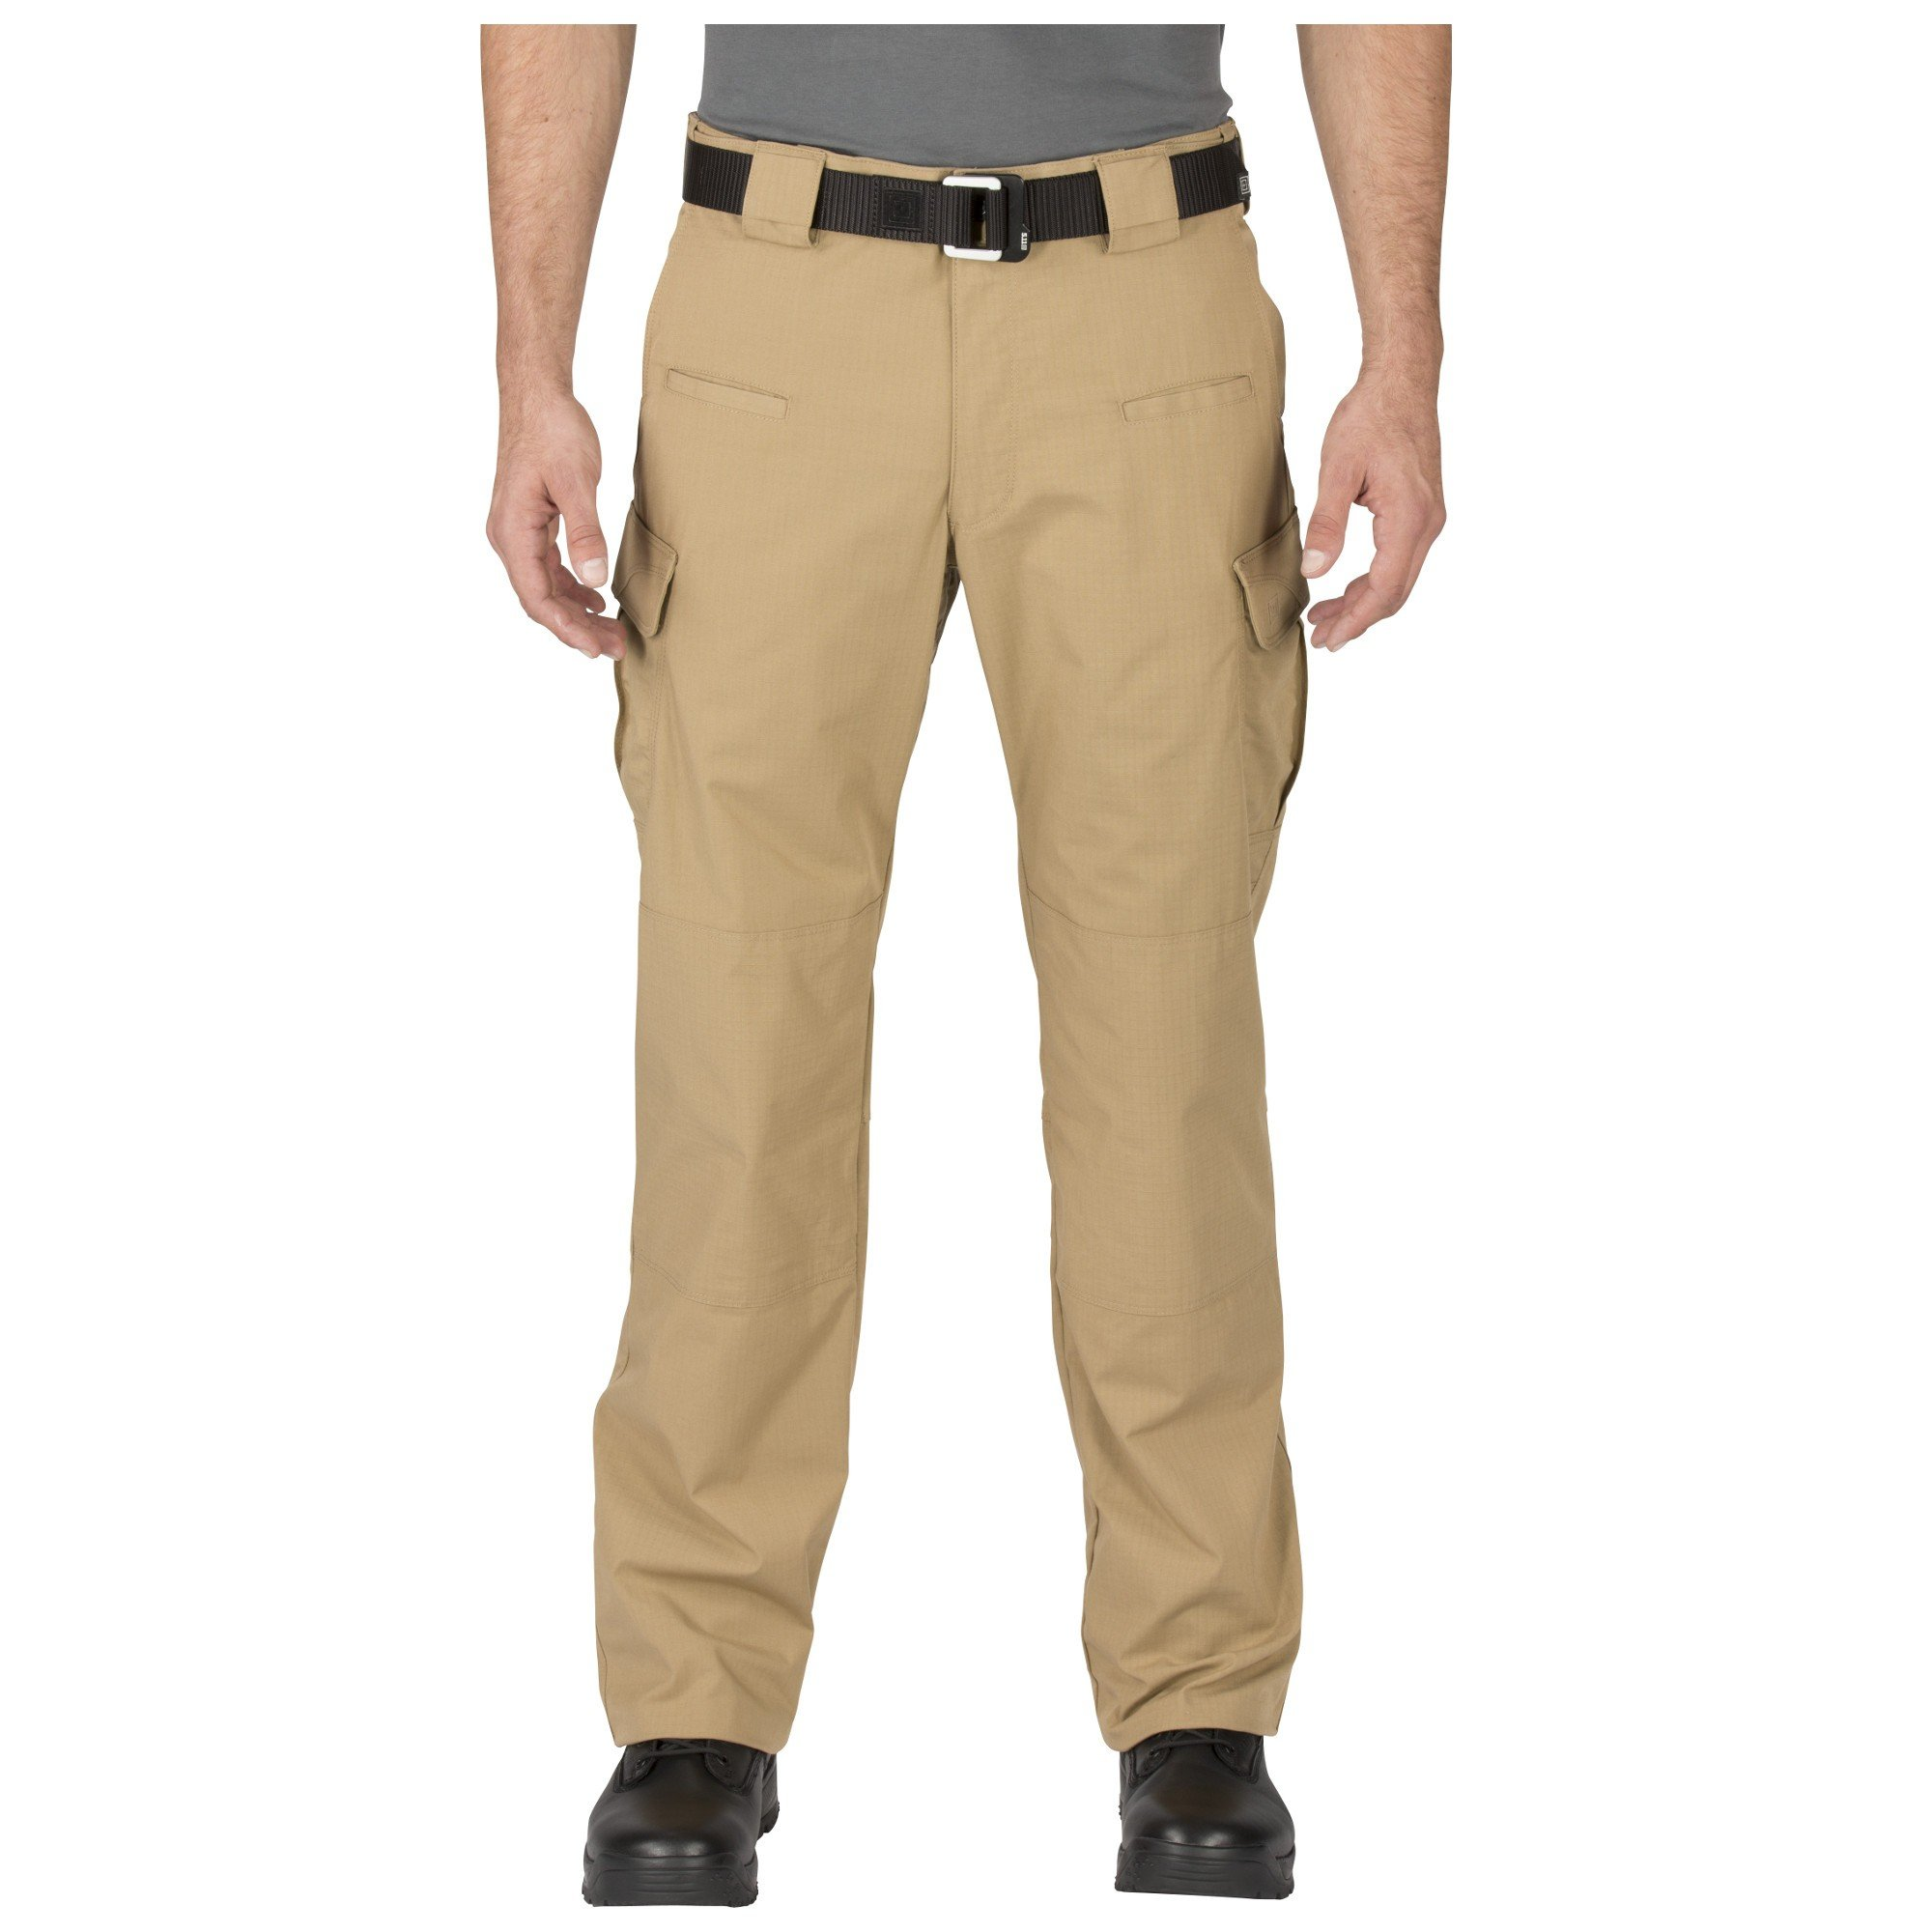 5.11 Tactical Stryke Pant, Coyote, 34x30